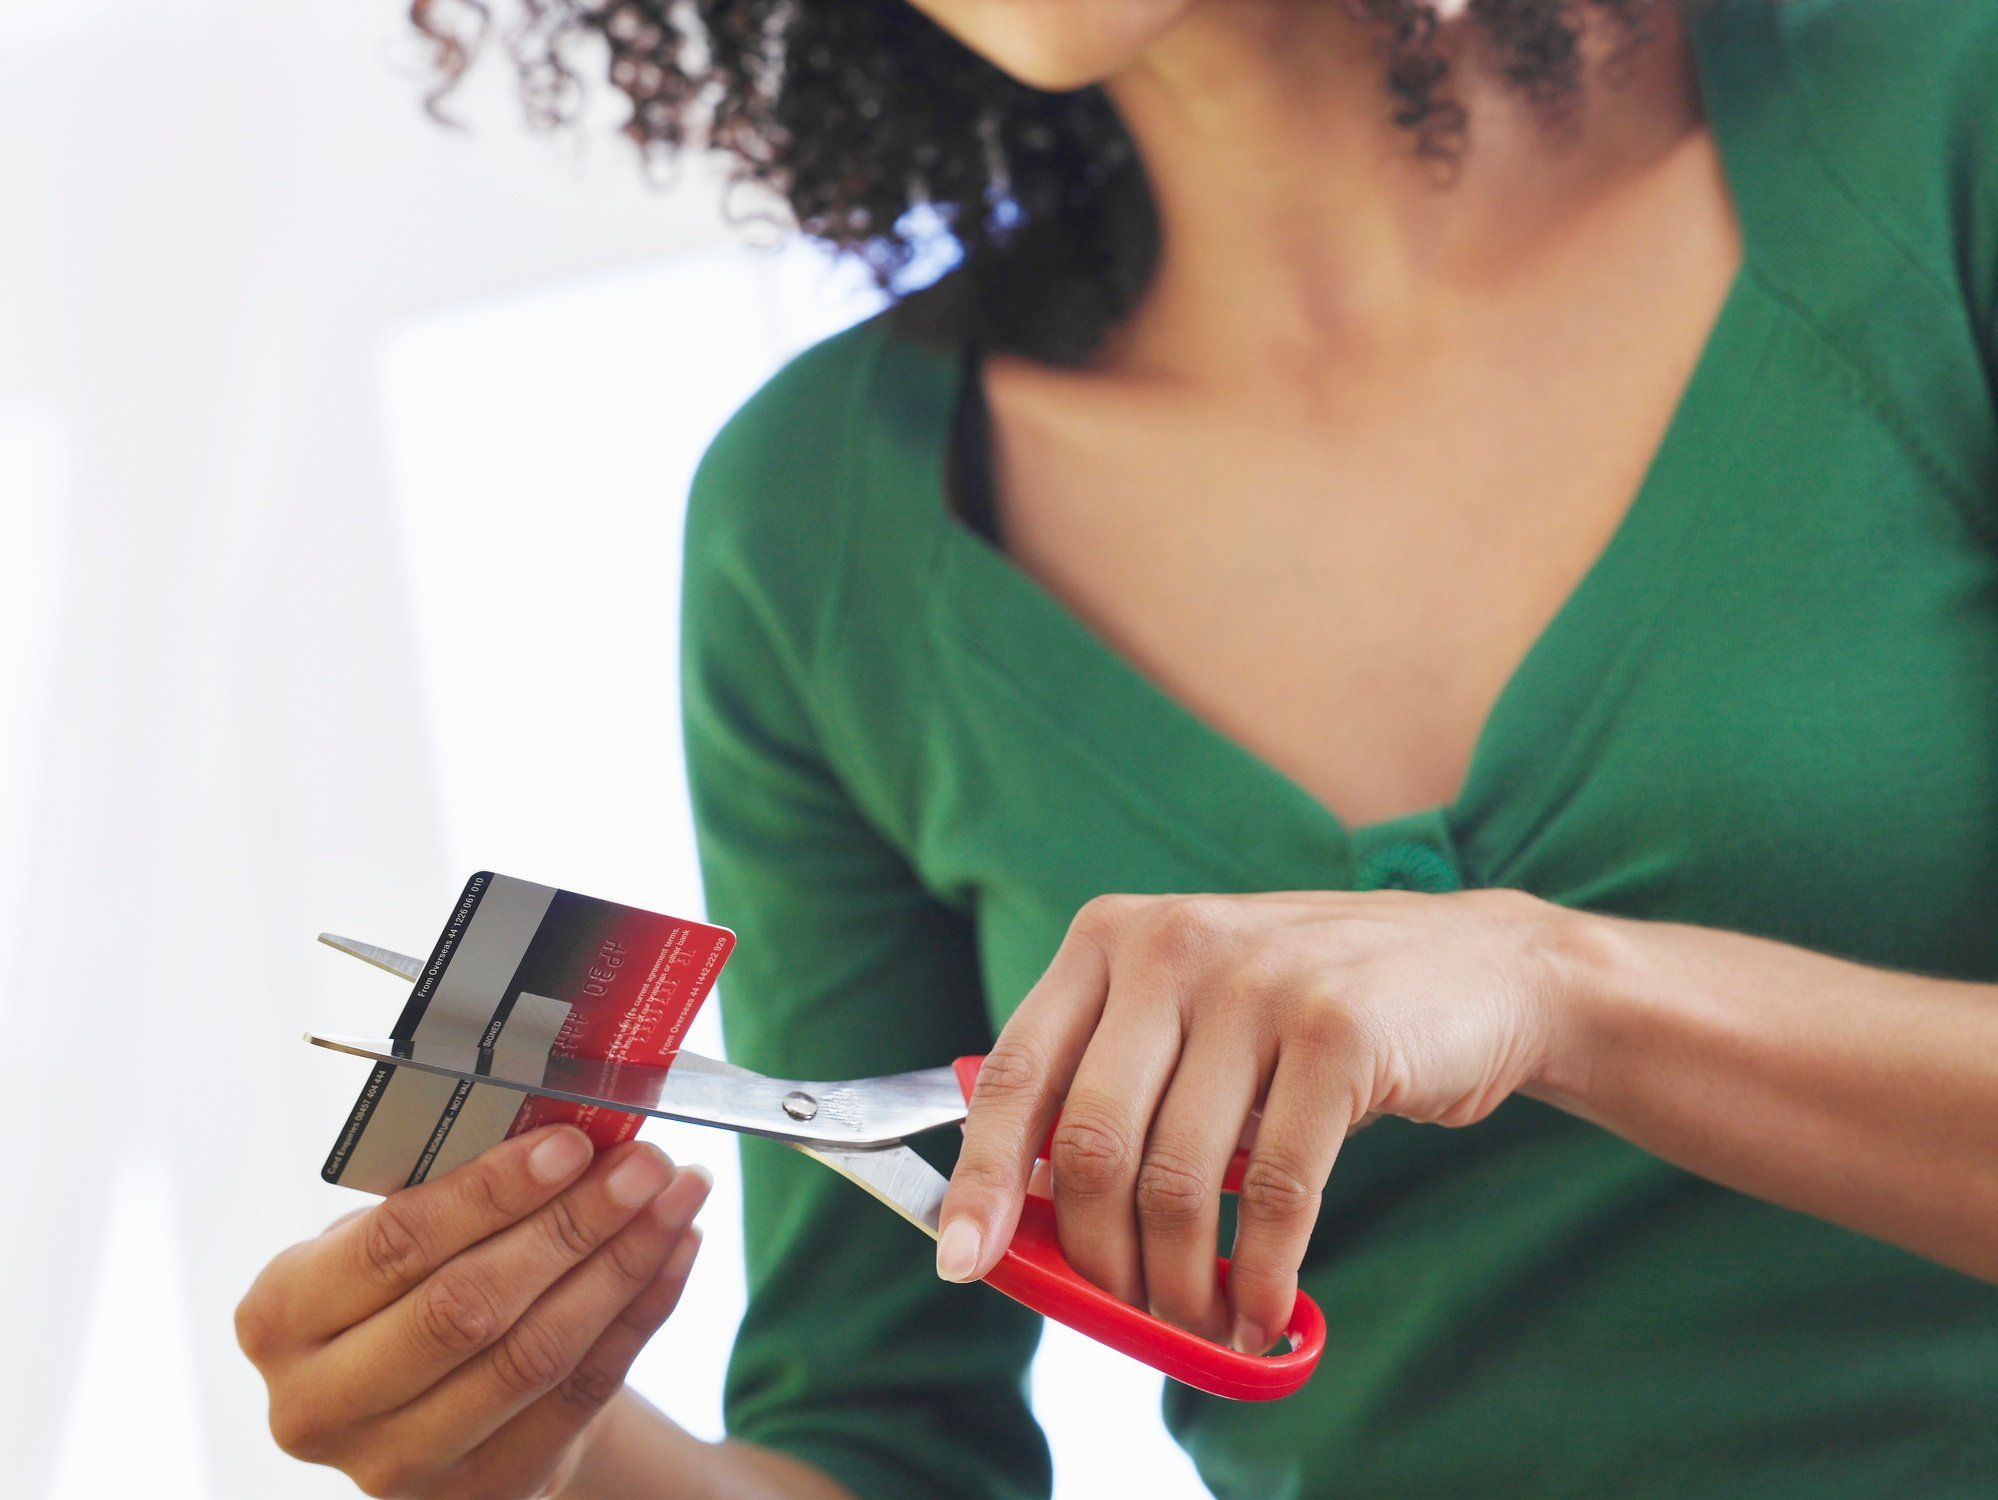 4 Reasons You Should Stop Using Your Debit Card Right Now